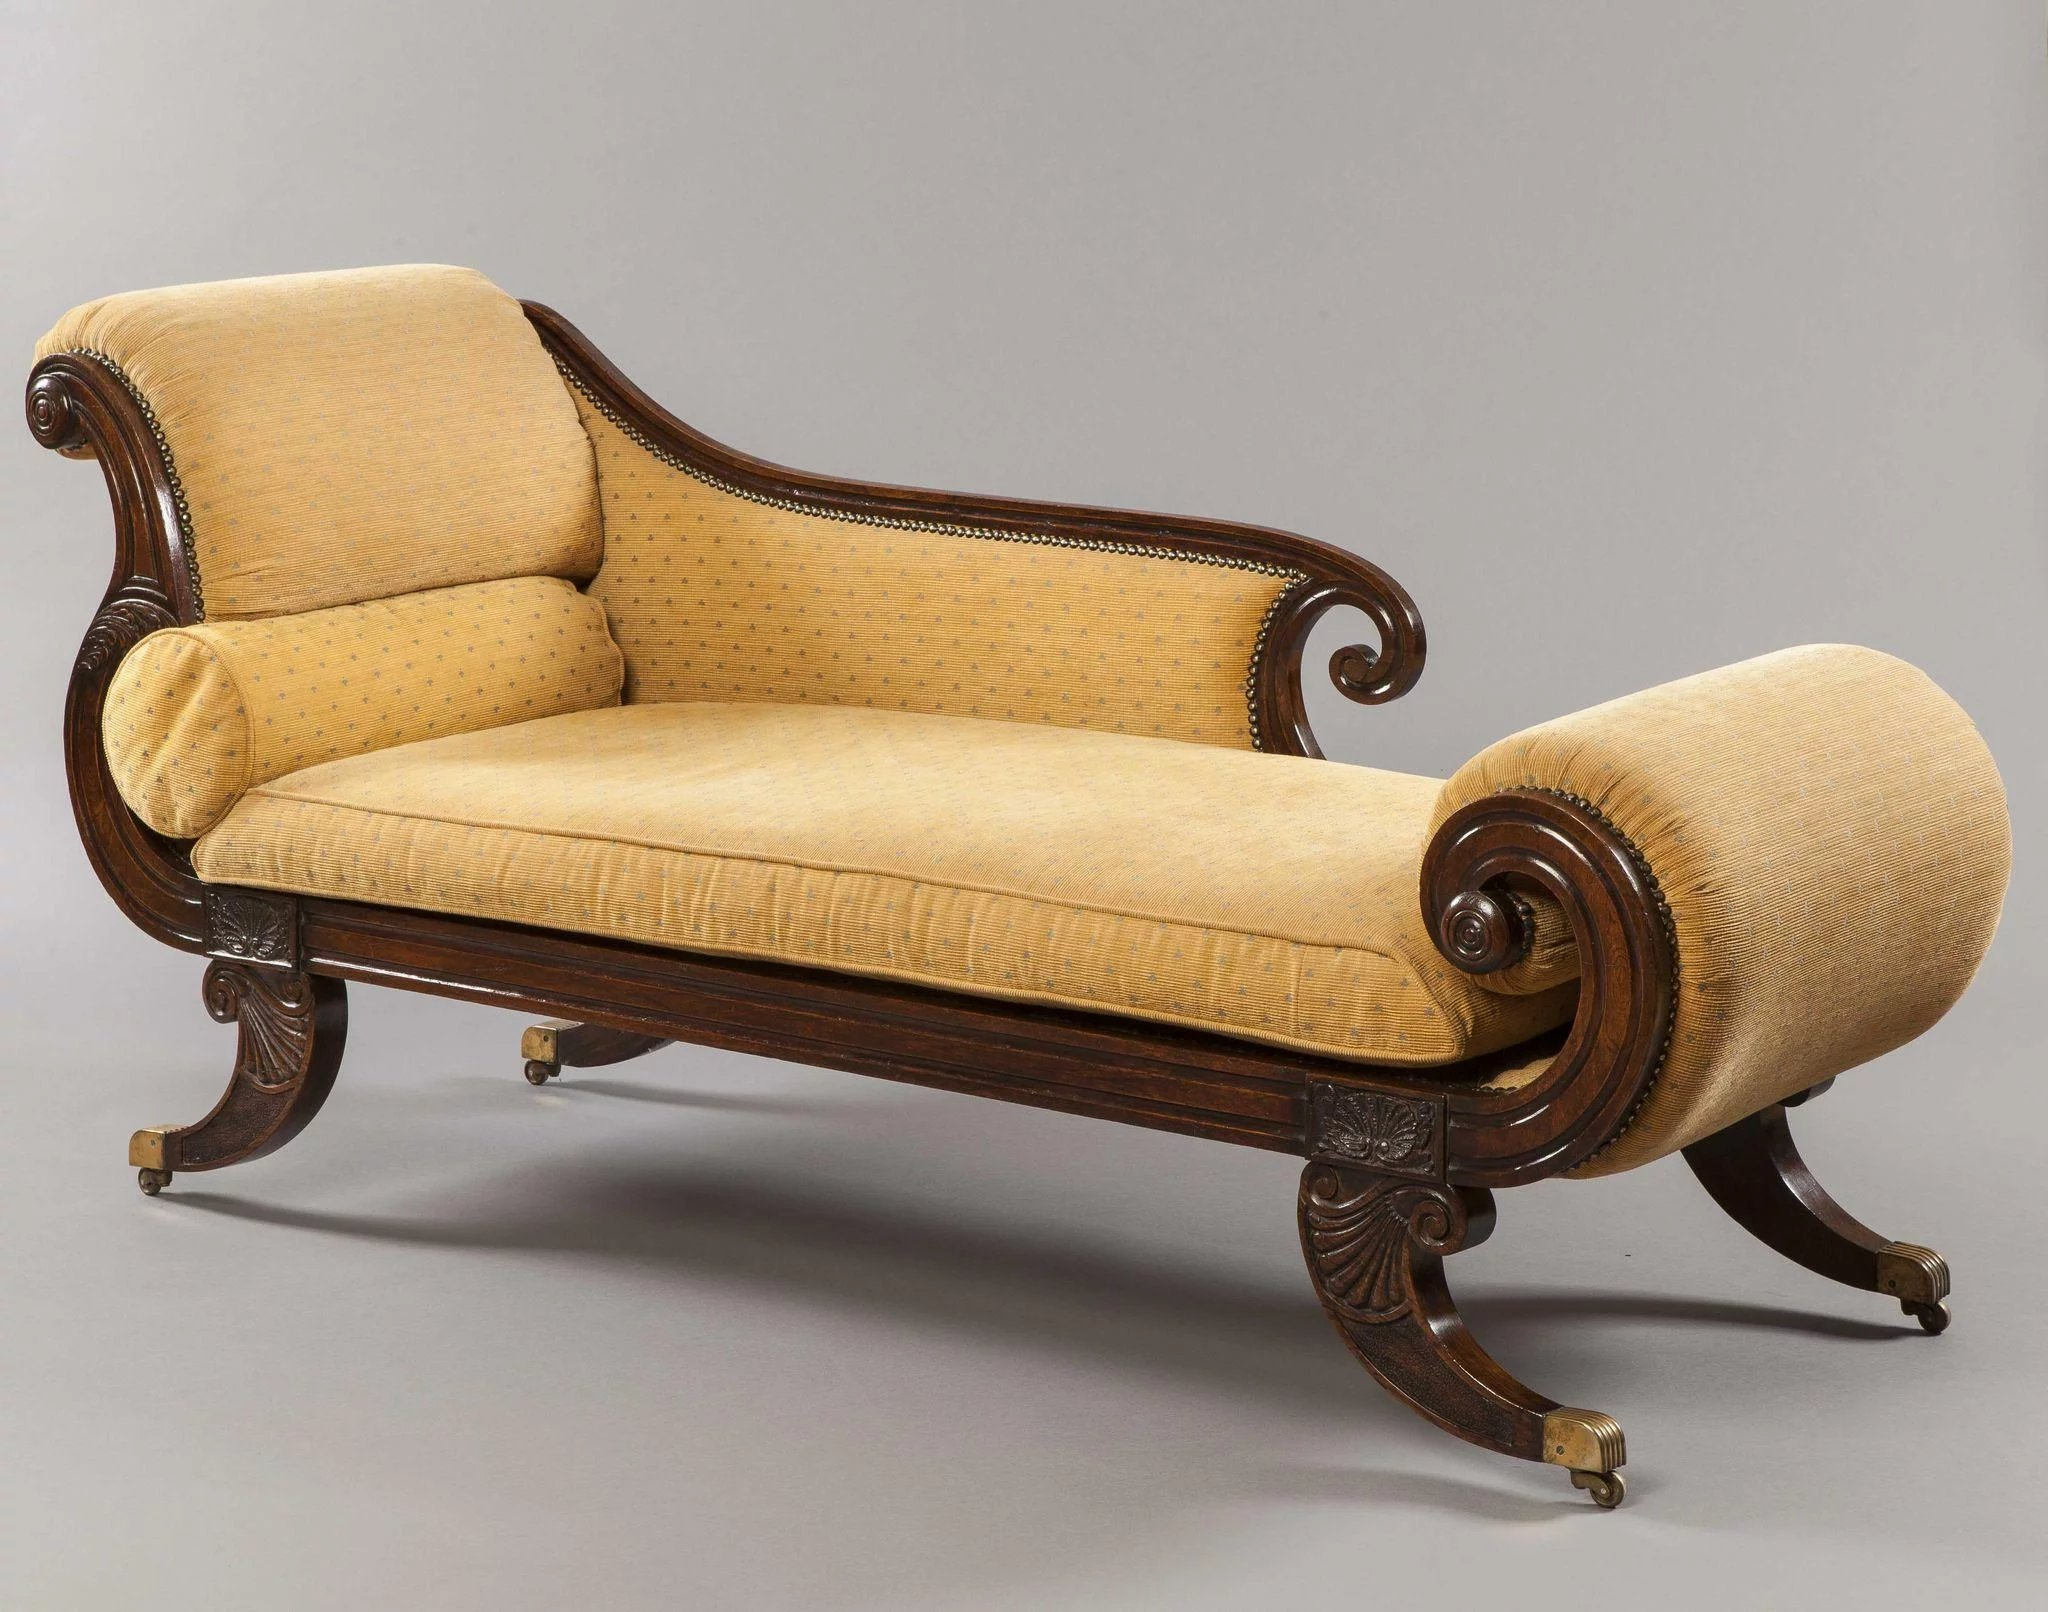 Regency Period Chaise Longue : Butchoff Antiques | RubyLUX on chaise recliner chair, chaise sofa sleeper, chaise furniture,